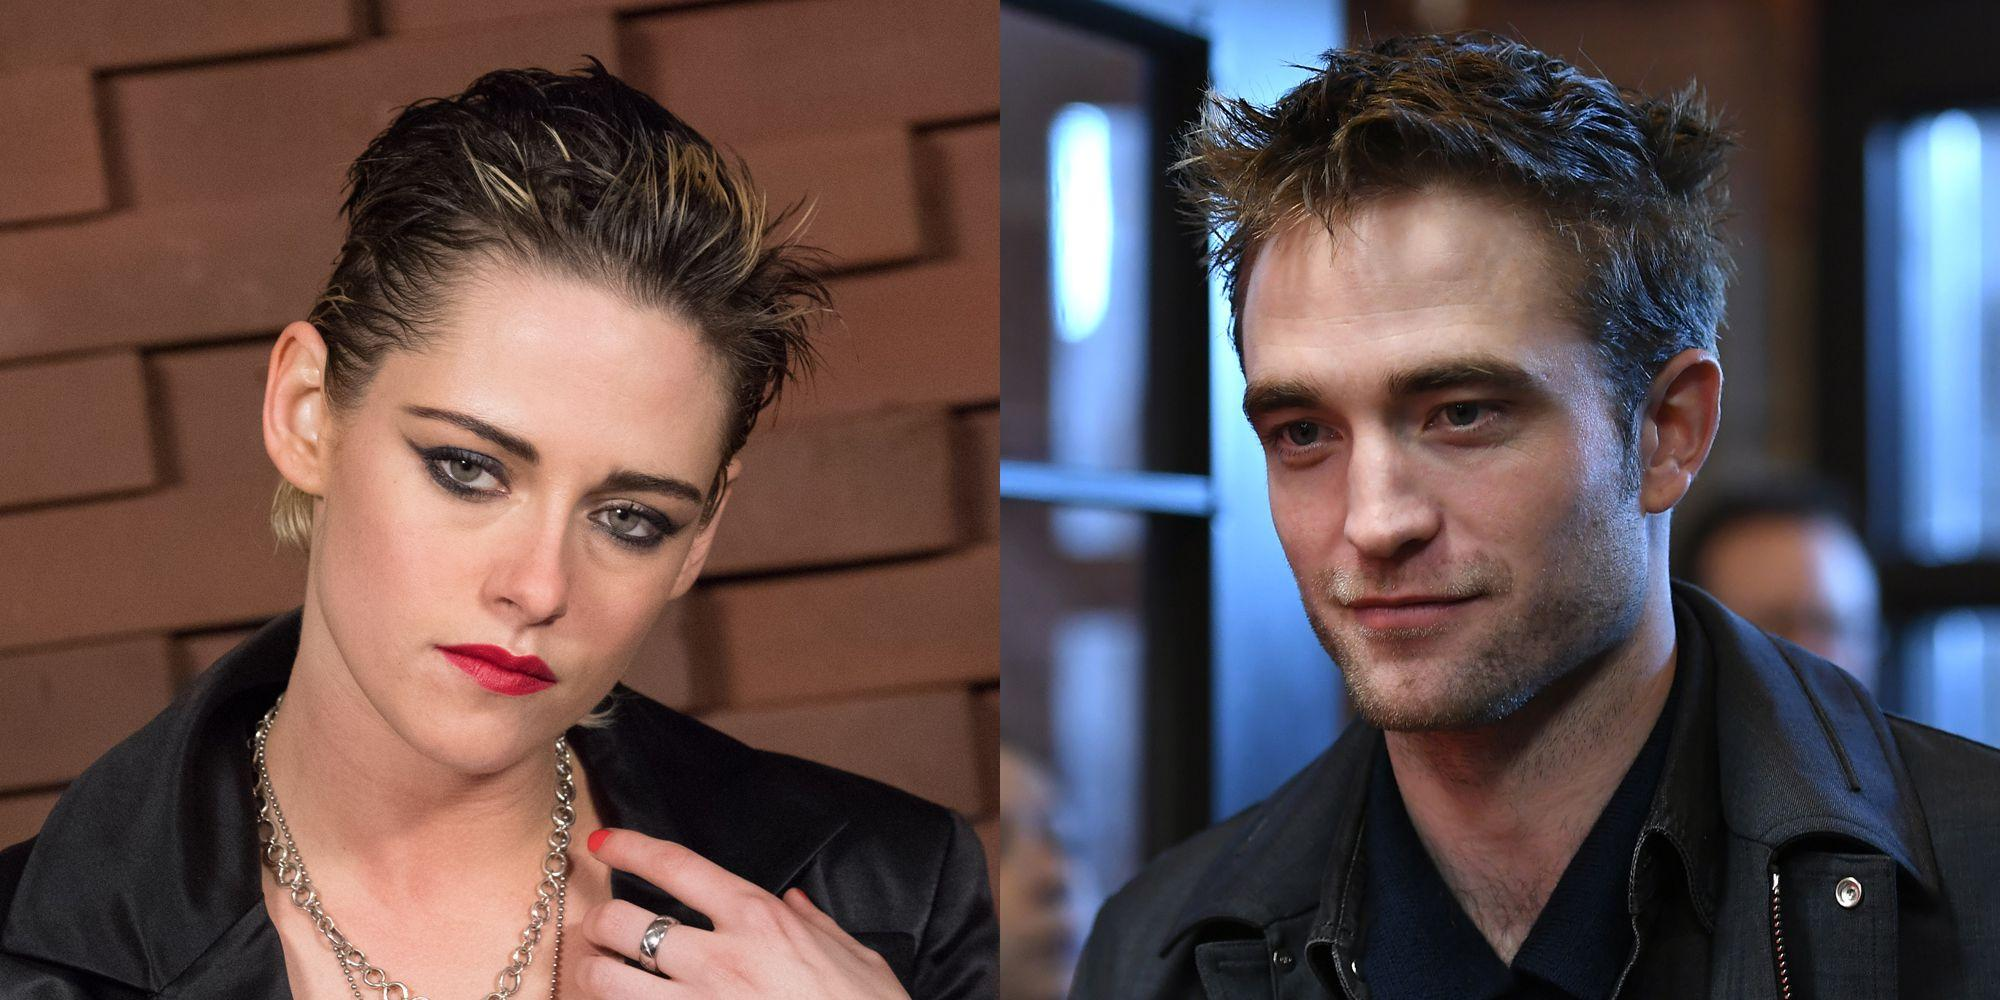 Kristen Stewart - Fans Insist She Plays Catwoman After Reports That Rob Pattinson Is The Next Batman